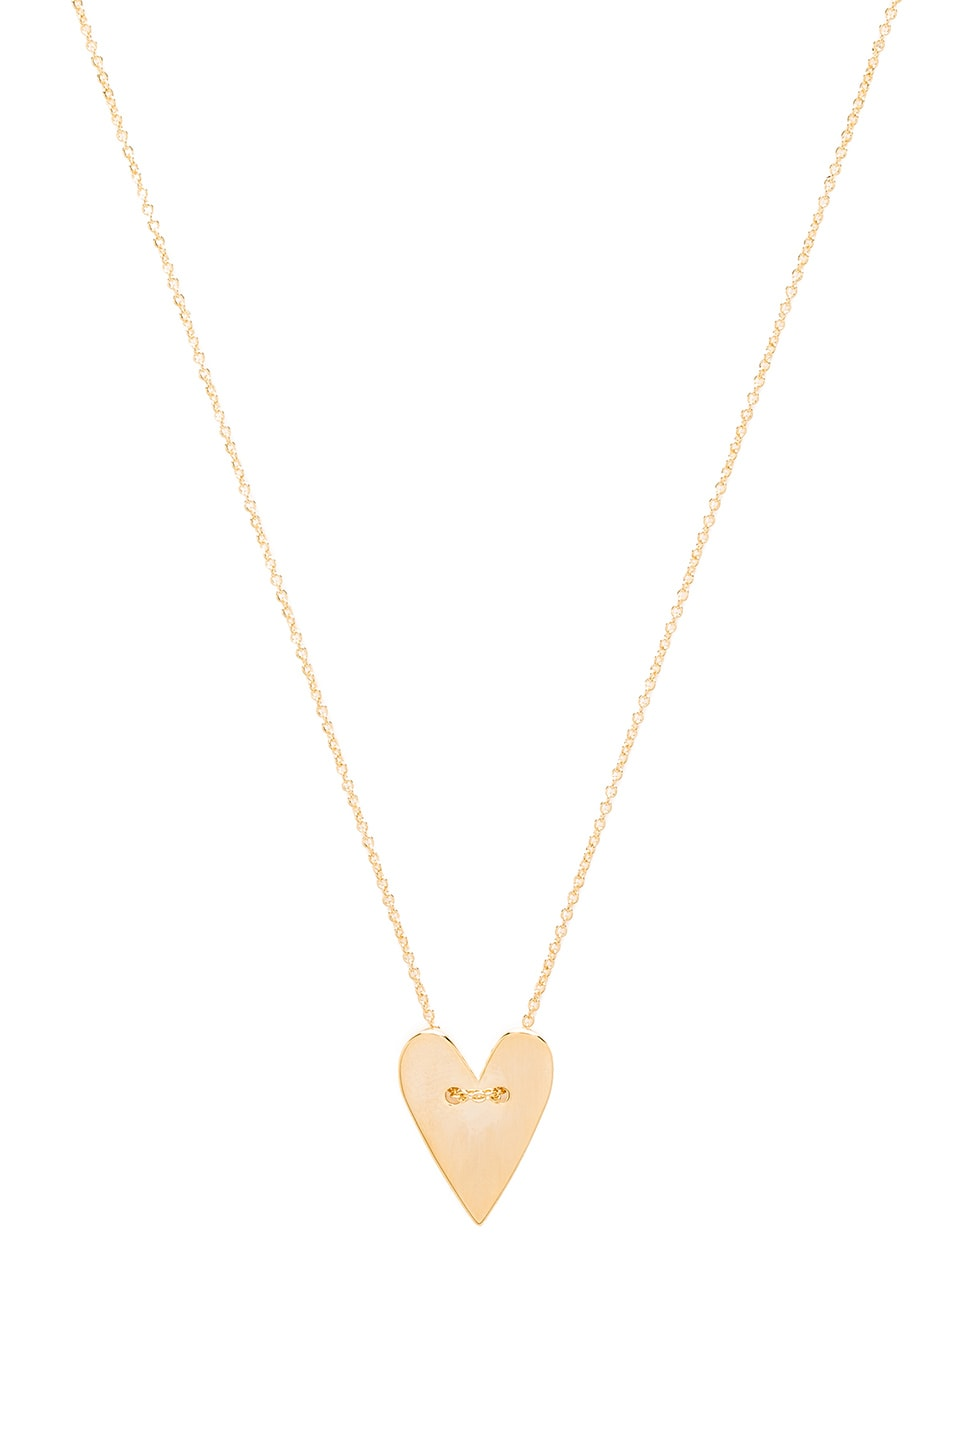 Tawnie & Brina Heart Necklace in Gold